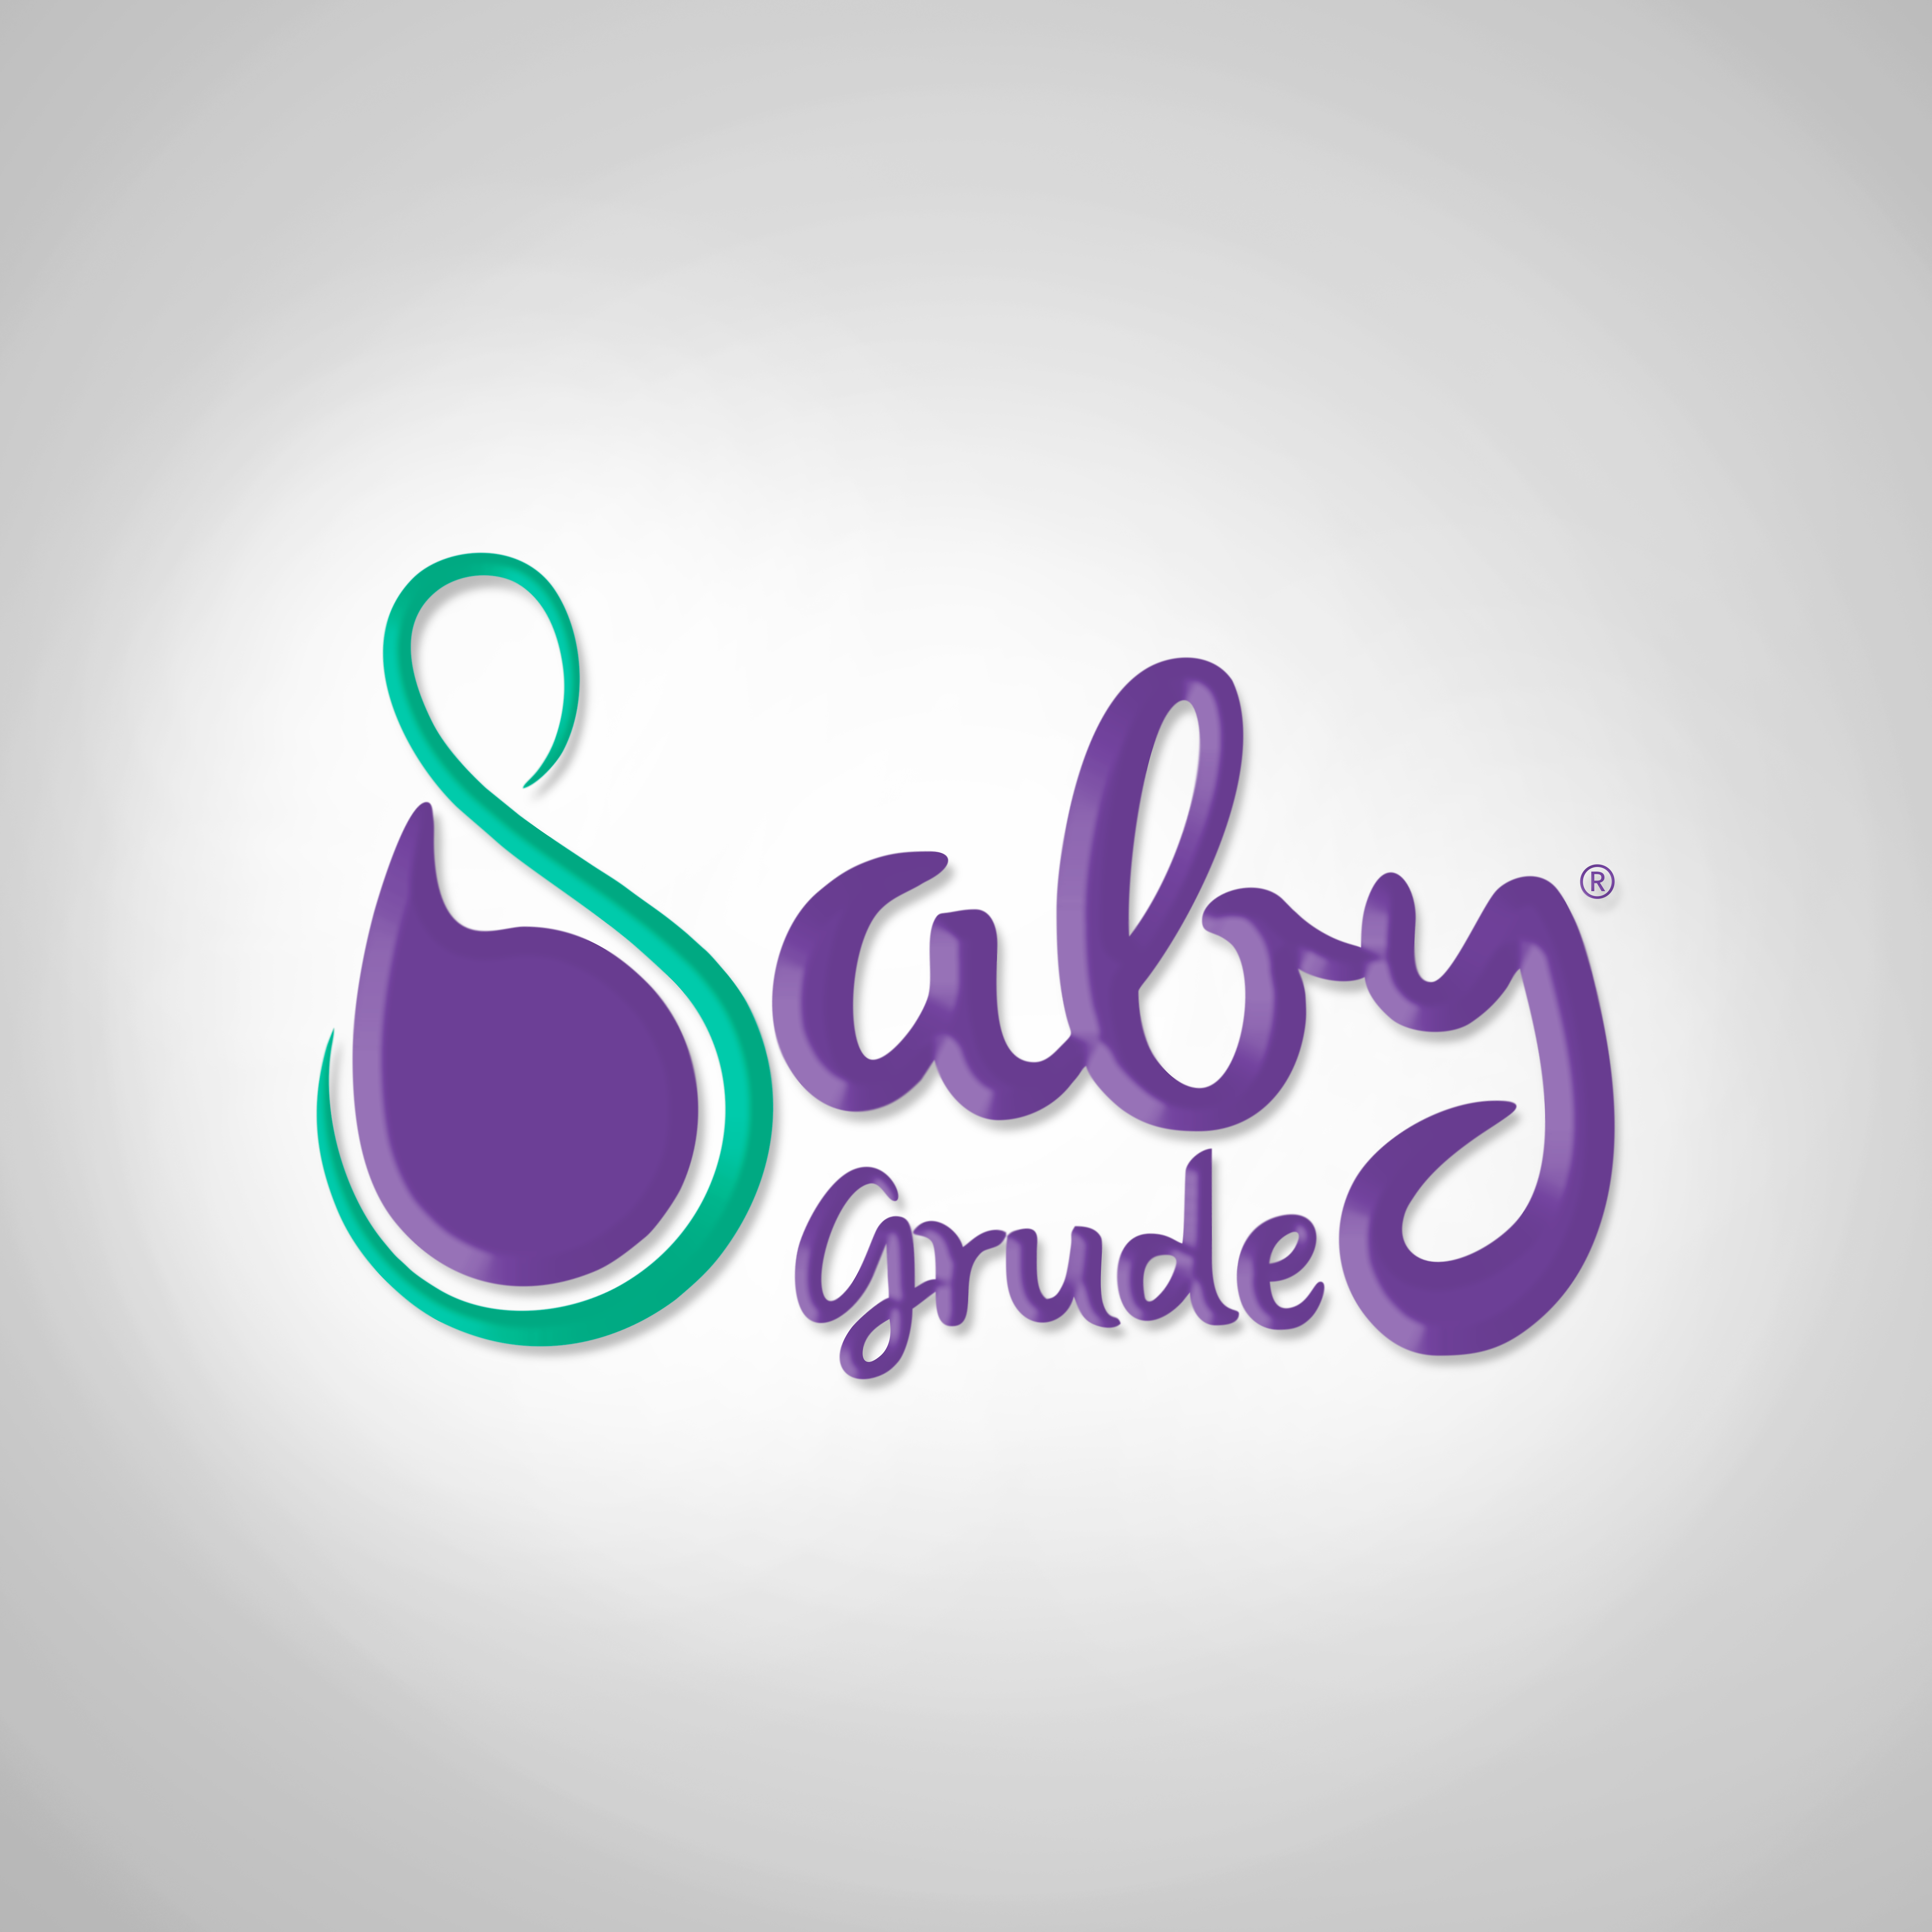 3D - Logo Baby Grude clear background